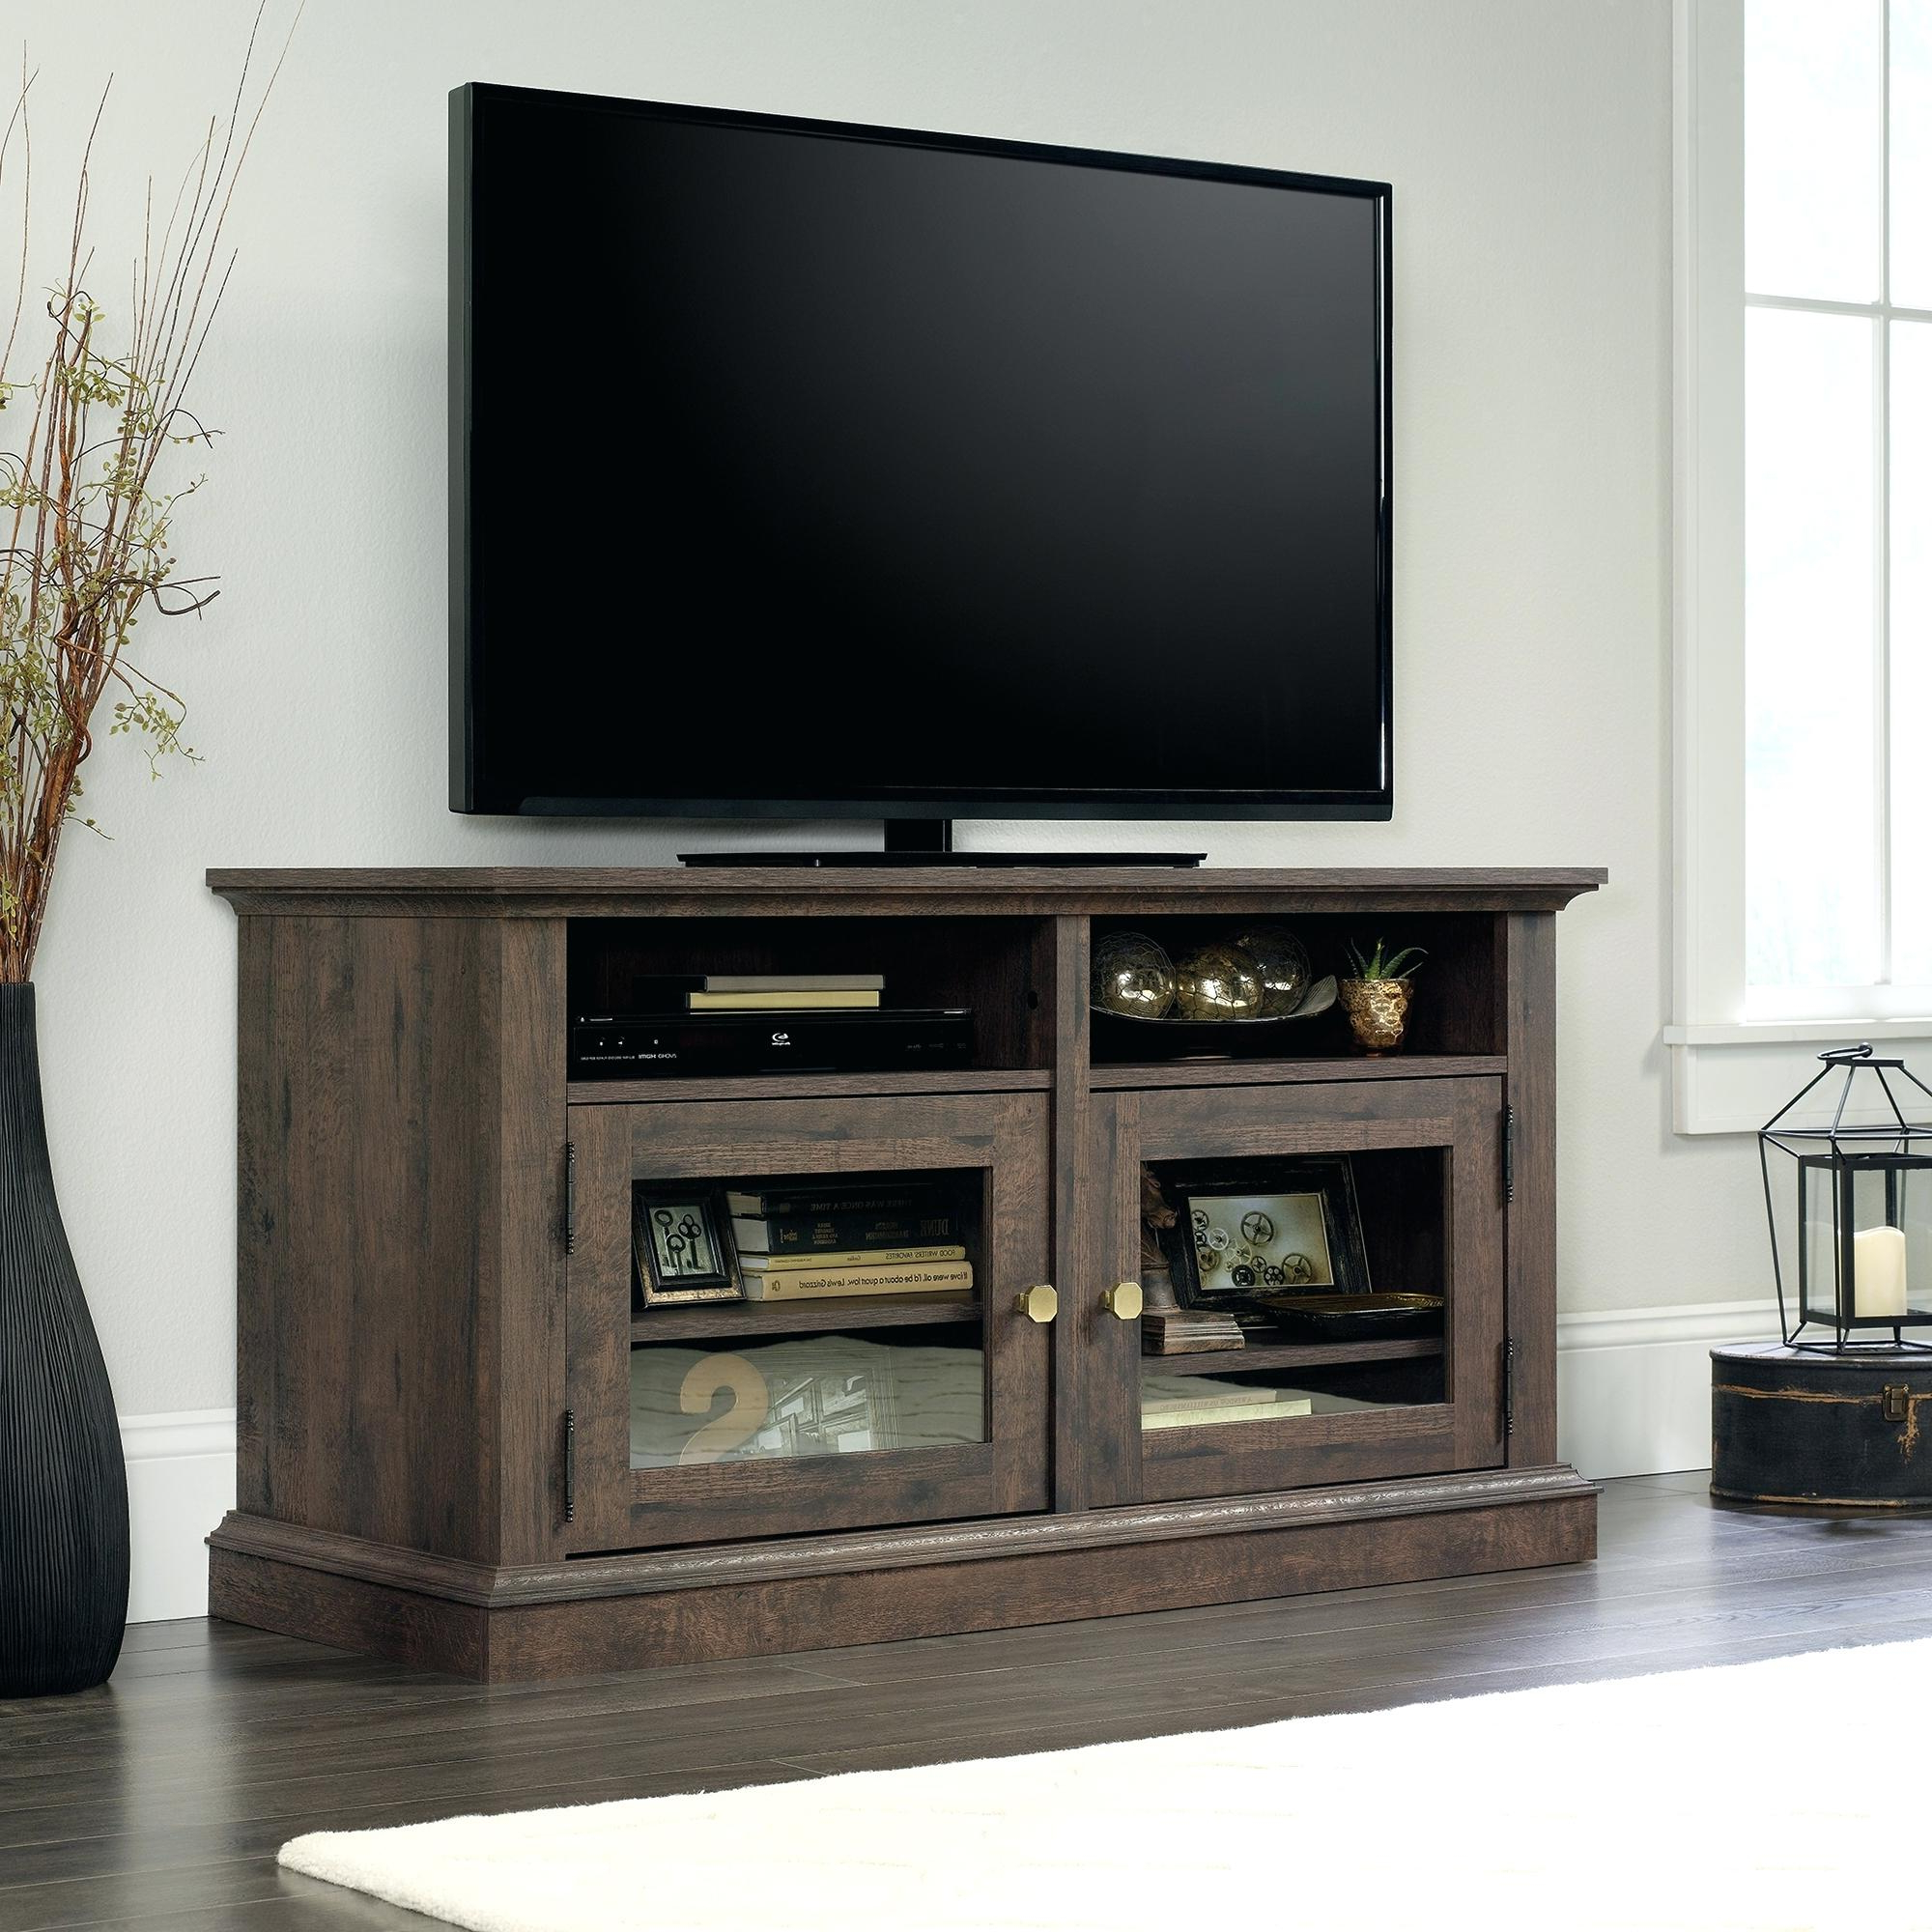 Cantabriamusica Regarding Enclosed Tv Cabinets For Flat Screens With Doors (Gallery 15 of 20)